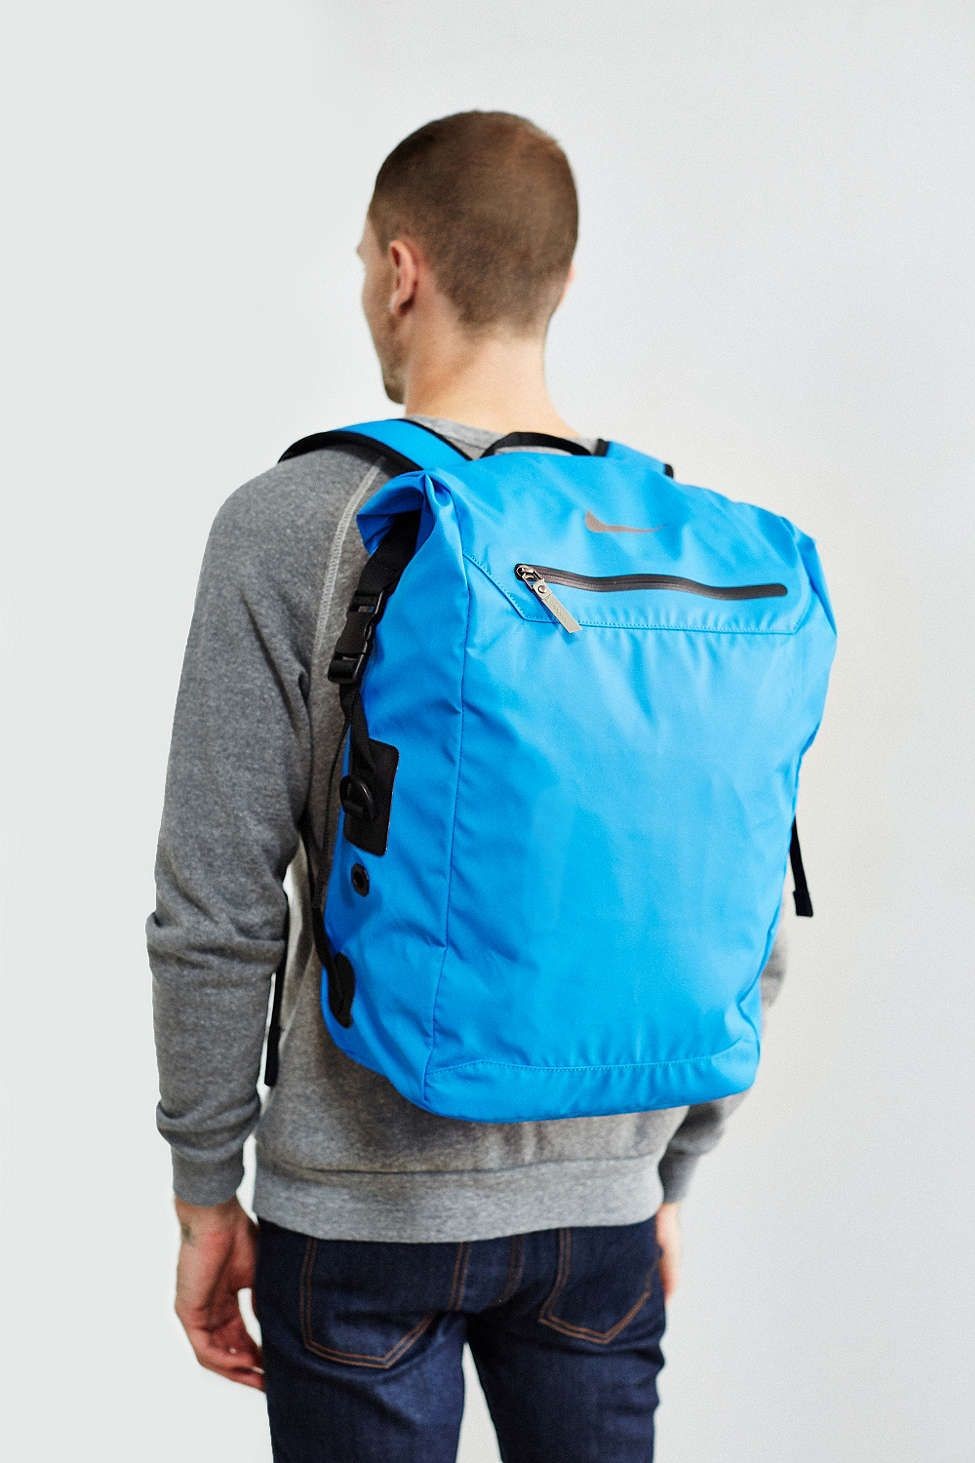 9fca20086811 Nike Swimmer Backpack - Urban Outfitters